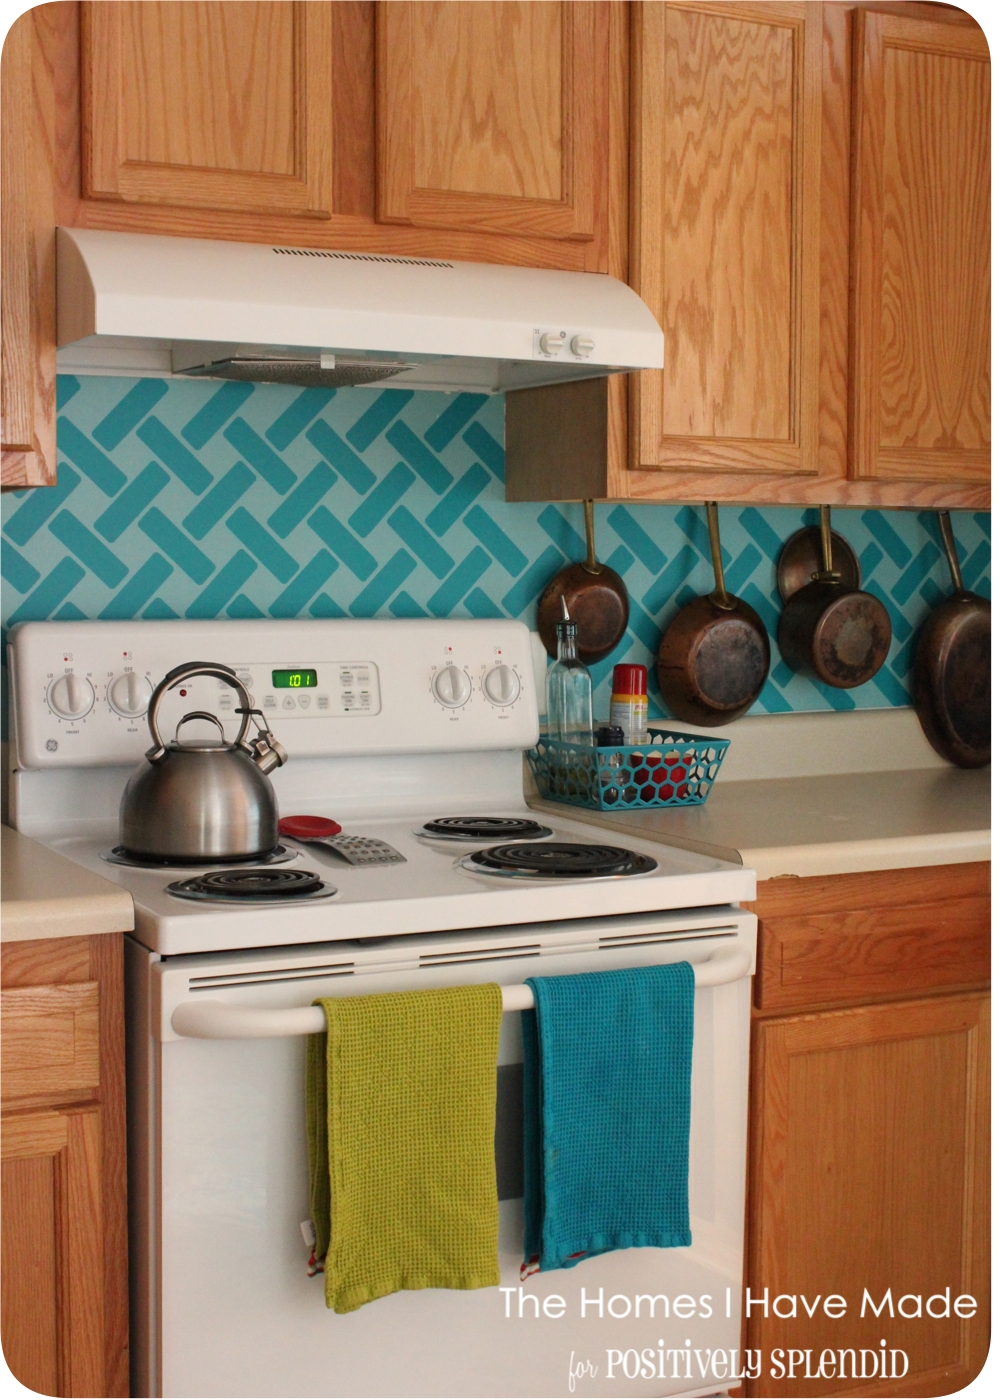 Kitchen Backsplash Vinyl vinyl tile backsplash